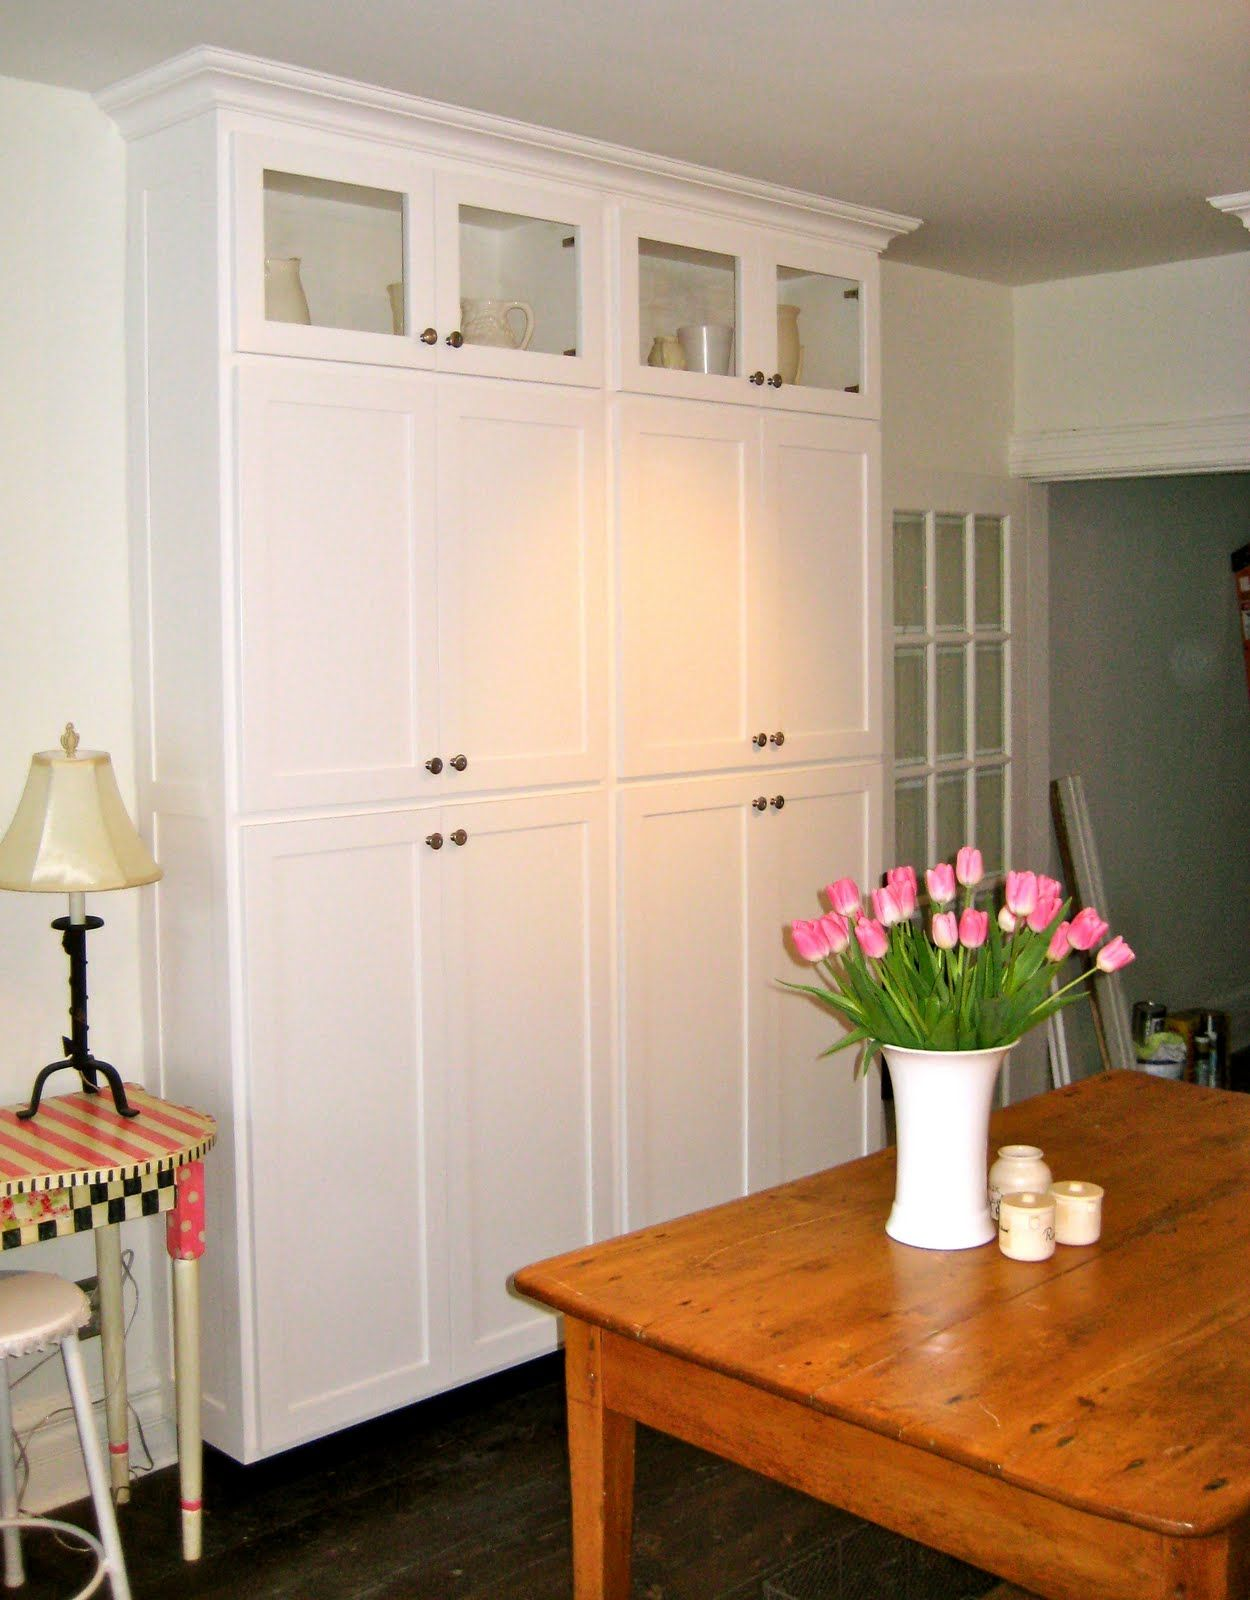 kitchen storage cabinet stand alone pantry cabinets My pantry I wanted a decent size pantry for storage Kitchen